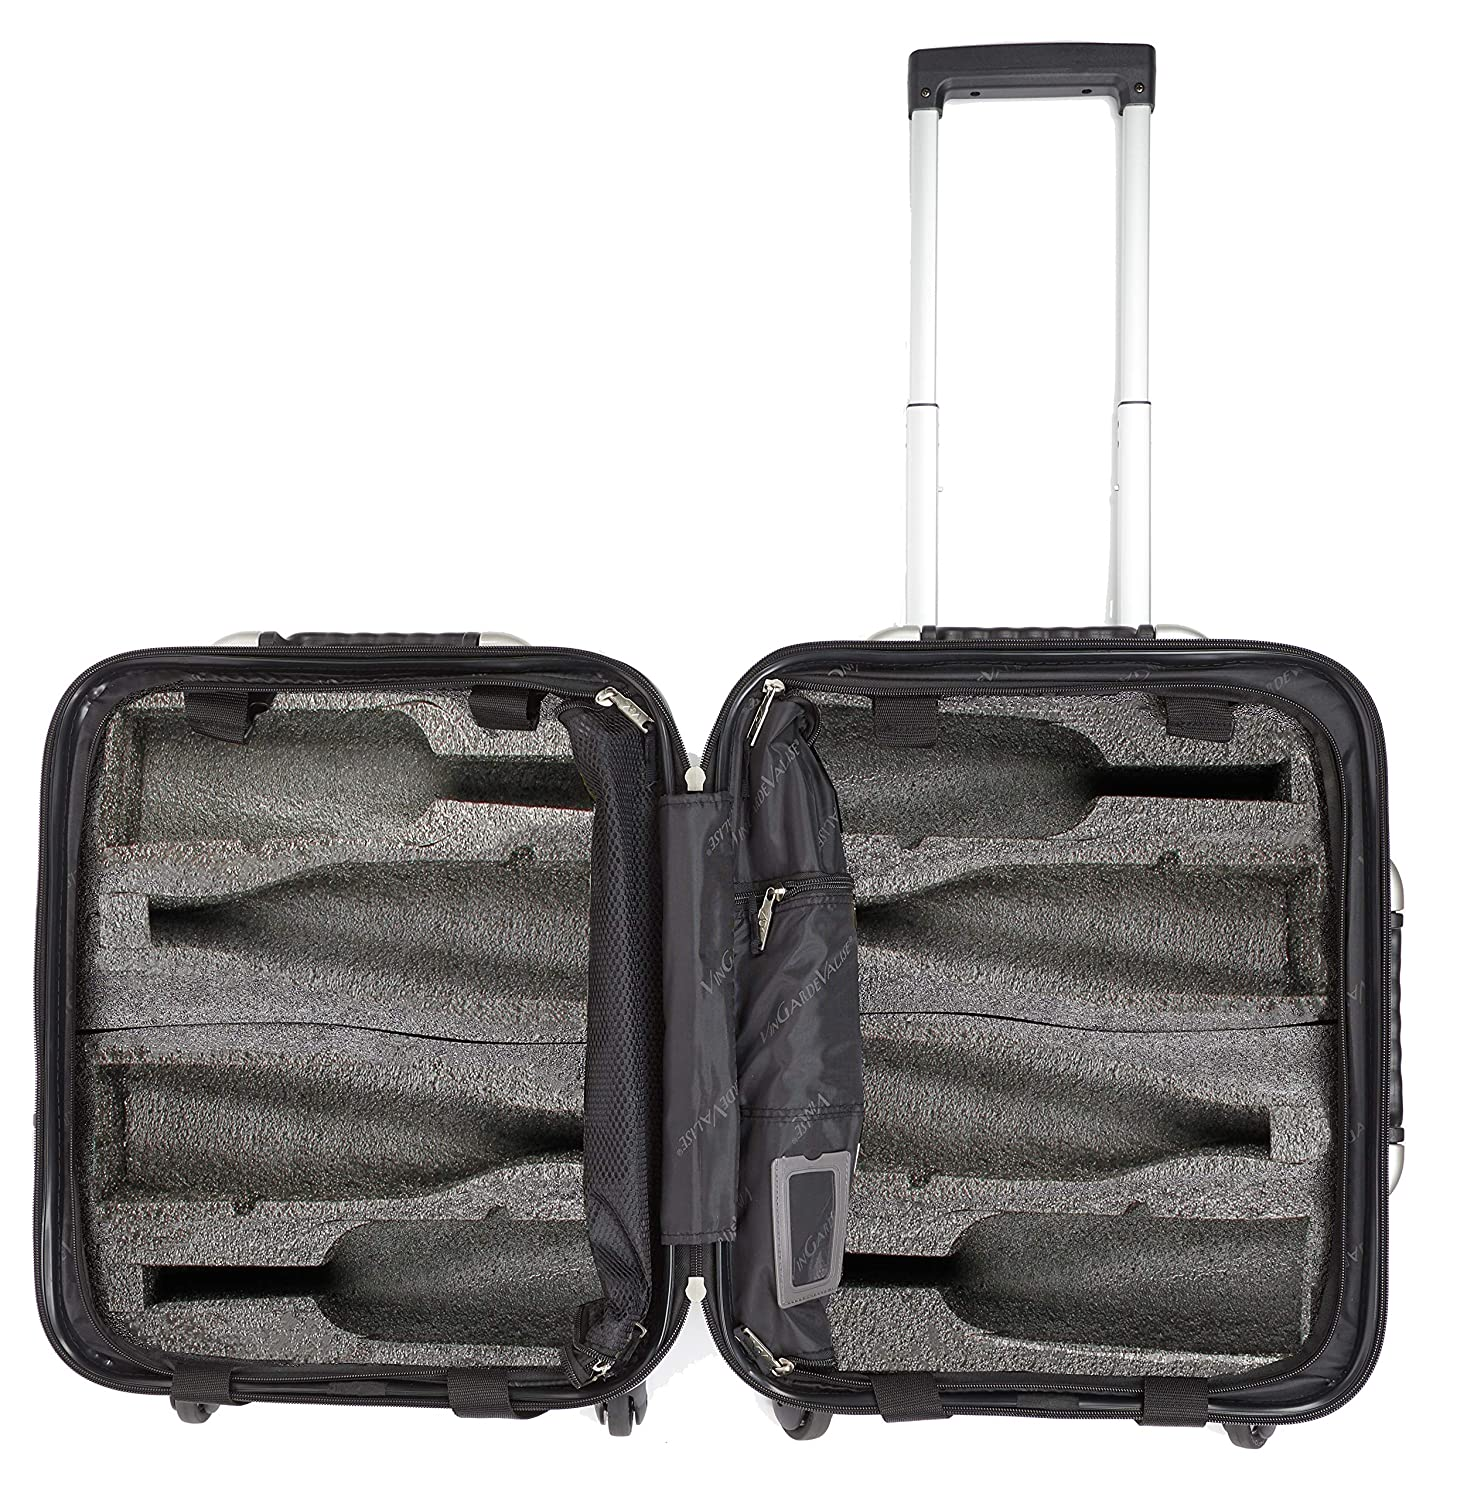 The VinGardeValise travel product recommended by Martin Stein on Lifney.